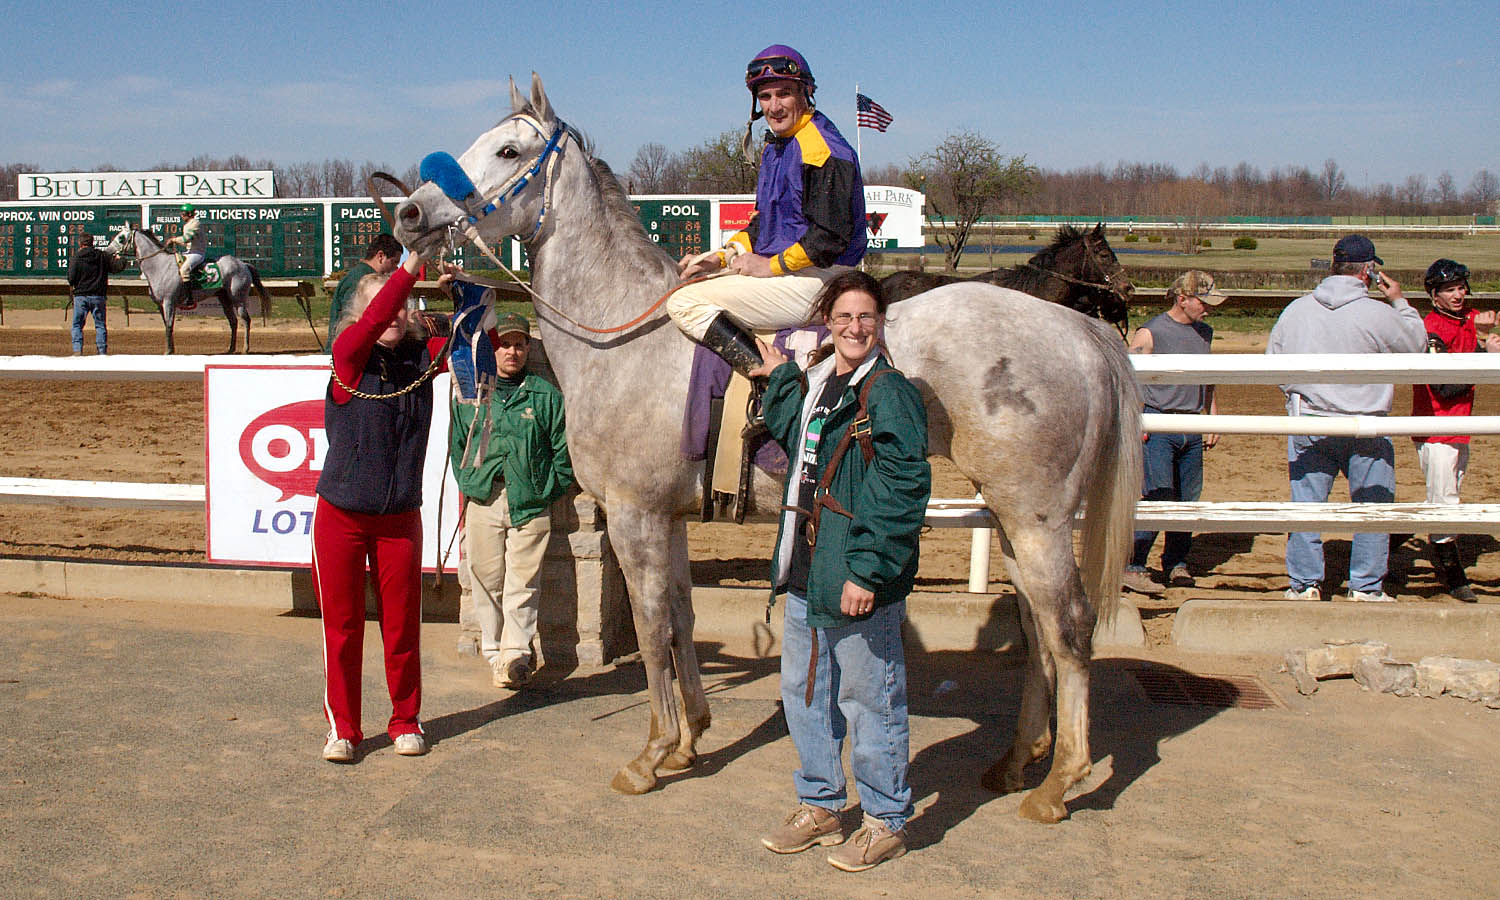 Tacticianor in the winner's circle at Beulah Park, April 1, 2009. Photo by Brad Conrad.